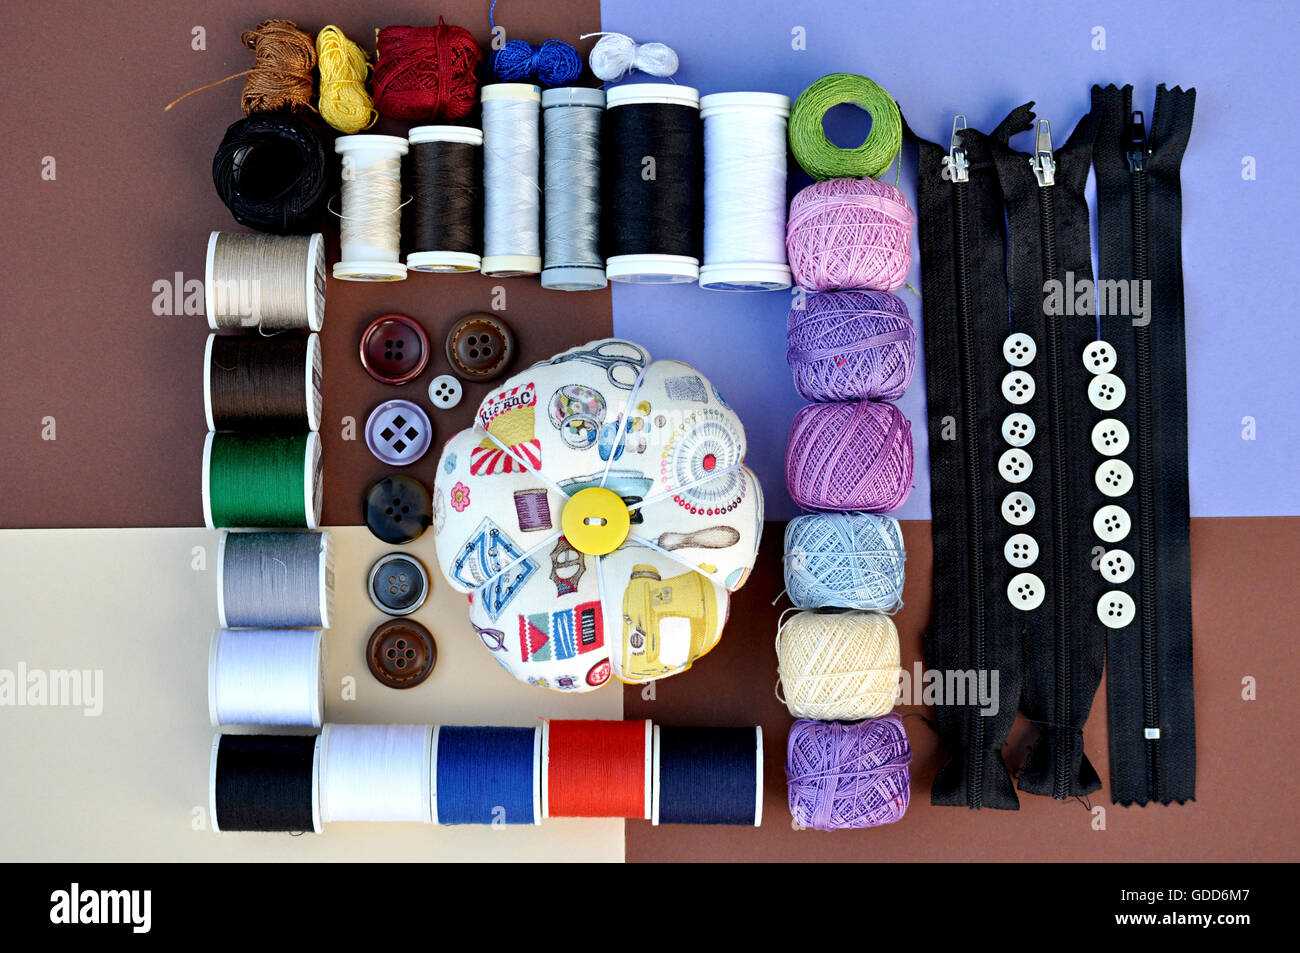 pincushions and sewing articles - Stock Image